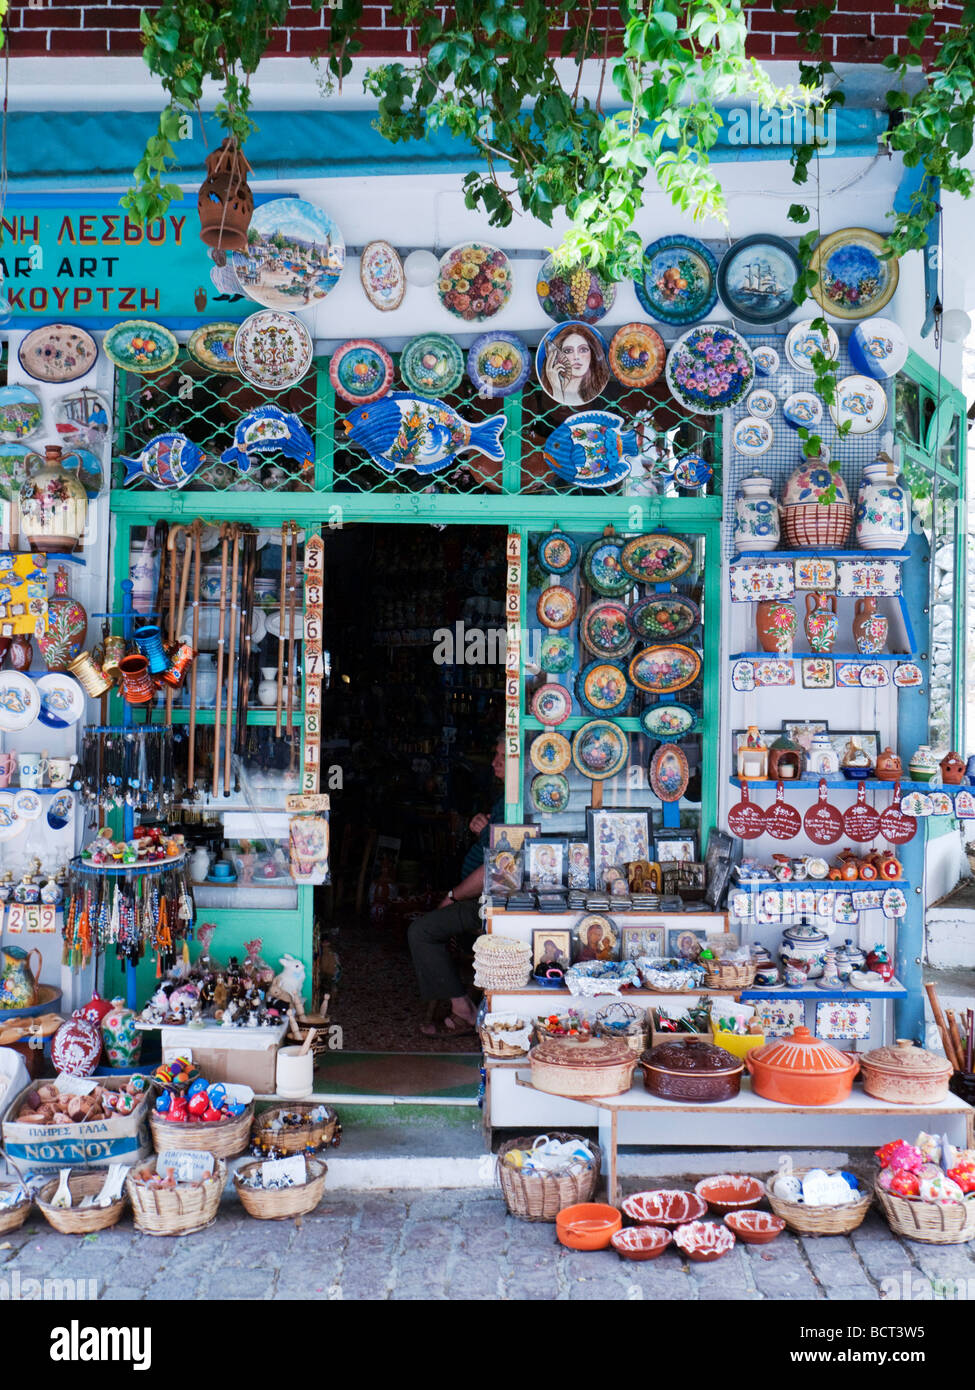 Detail of tourist shop selling traditional arts and crafts n Agiassos on Lesvos Island in Greece - Stock Image